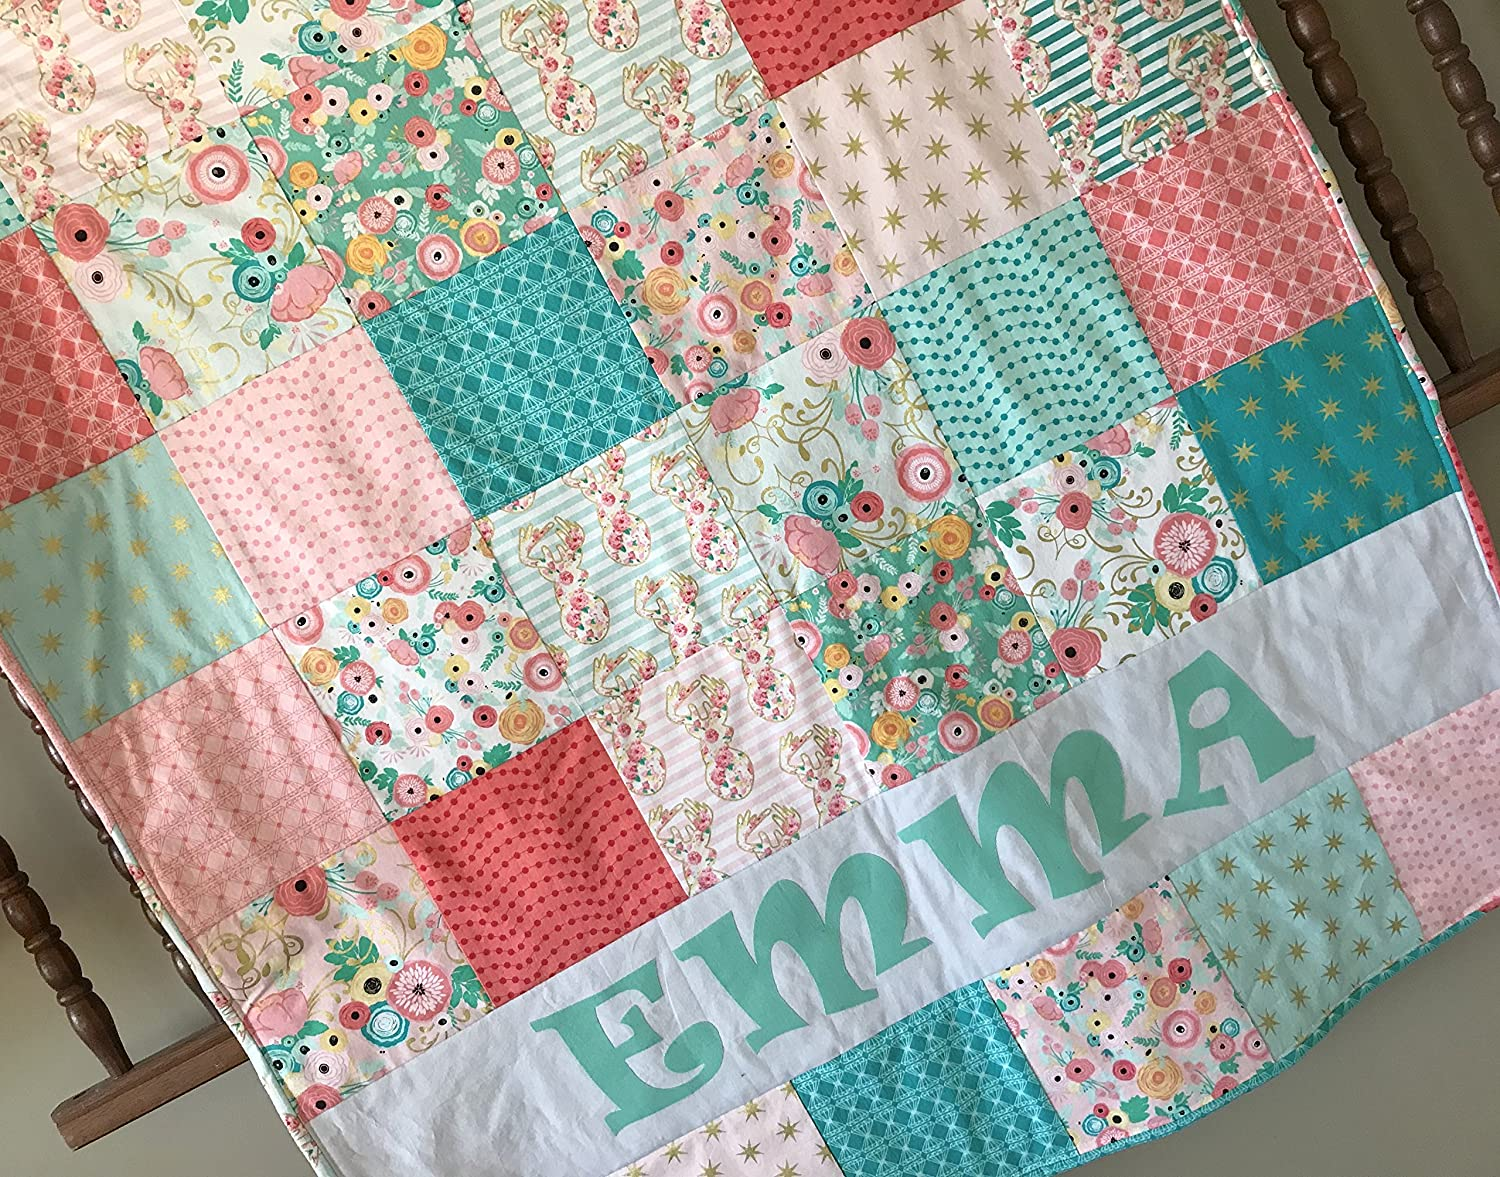 Personalized Bohemian Teal and Blush Pink Boho Floral Woodland Baby Girl Quilt - Crib Size